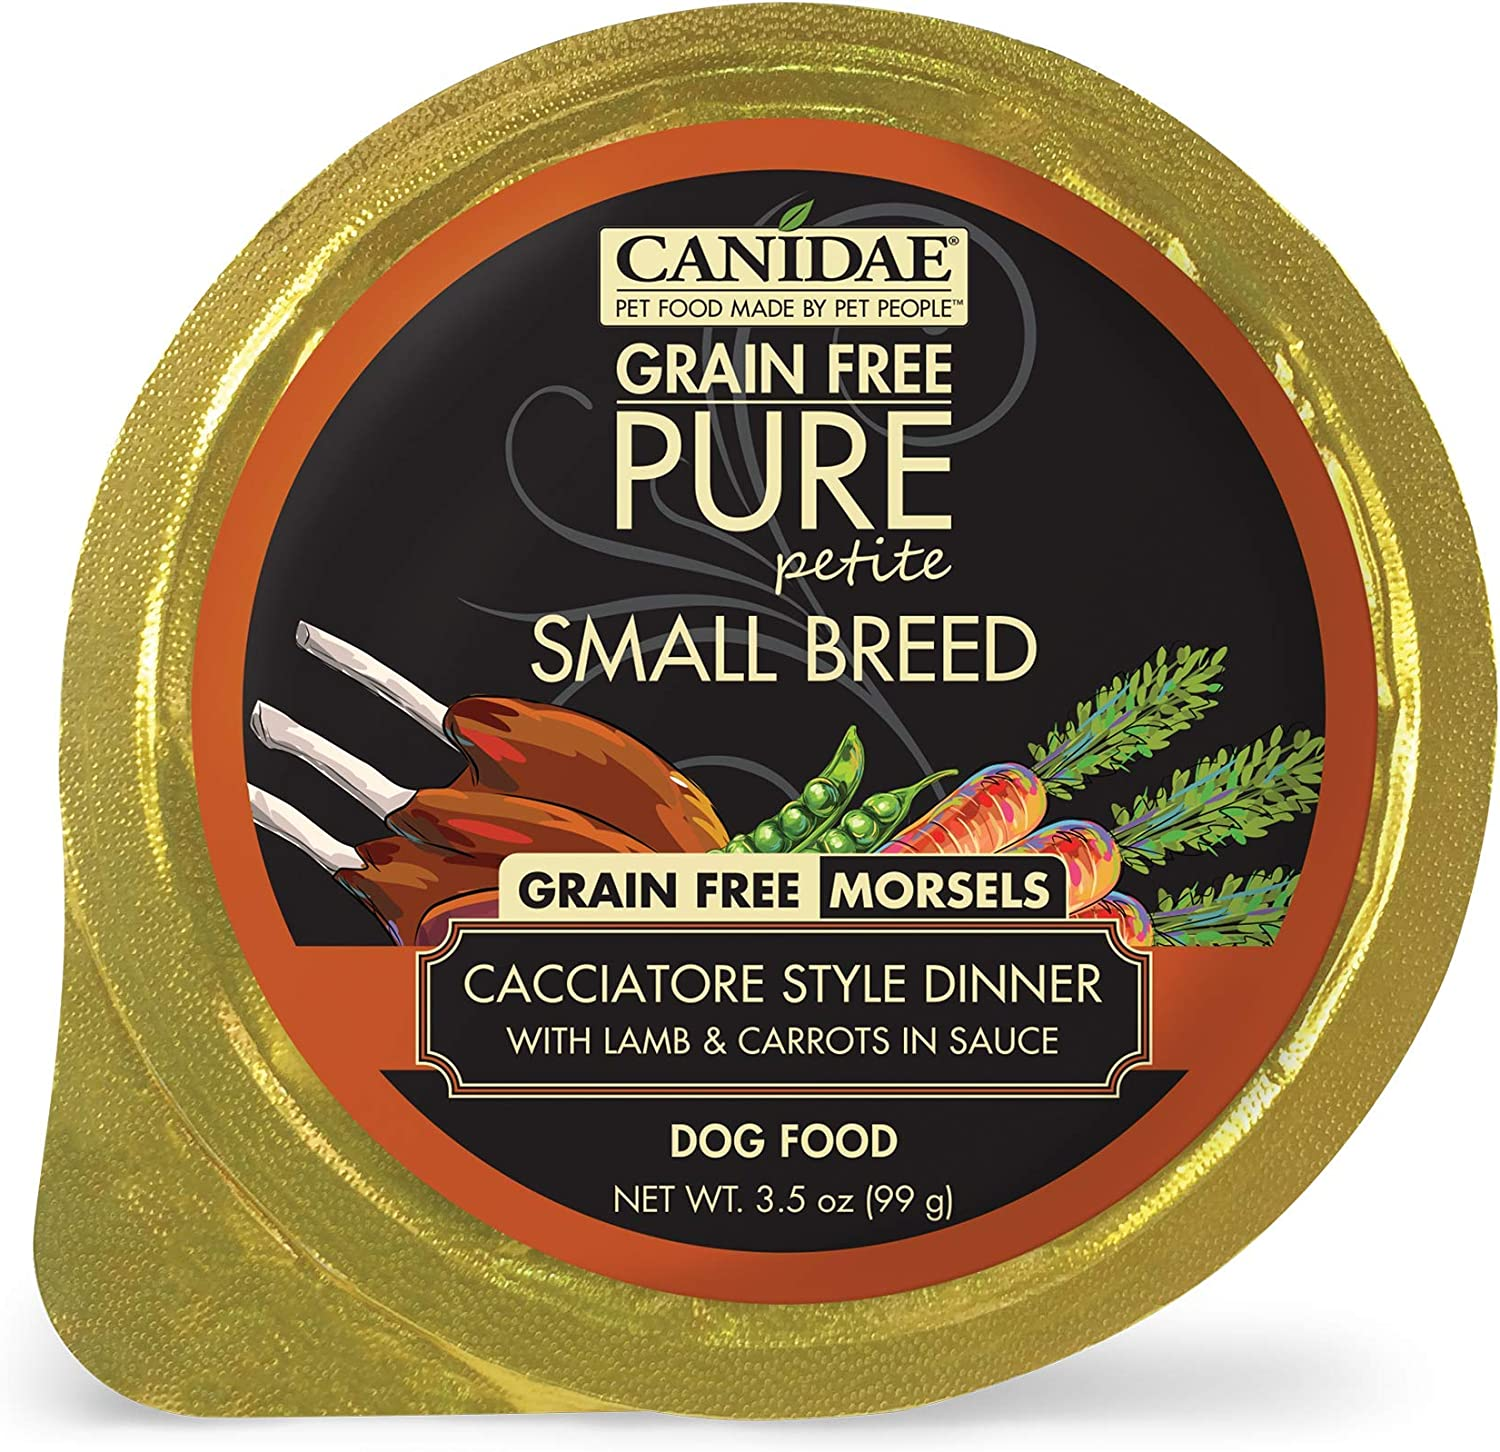 CANIDAE Petite Small Breed, Limited Ingredient Grain Free Wet Dog Food, Lamb & Carrot Morsels, 3.5oz (12Pk)